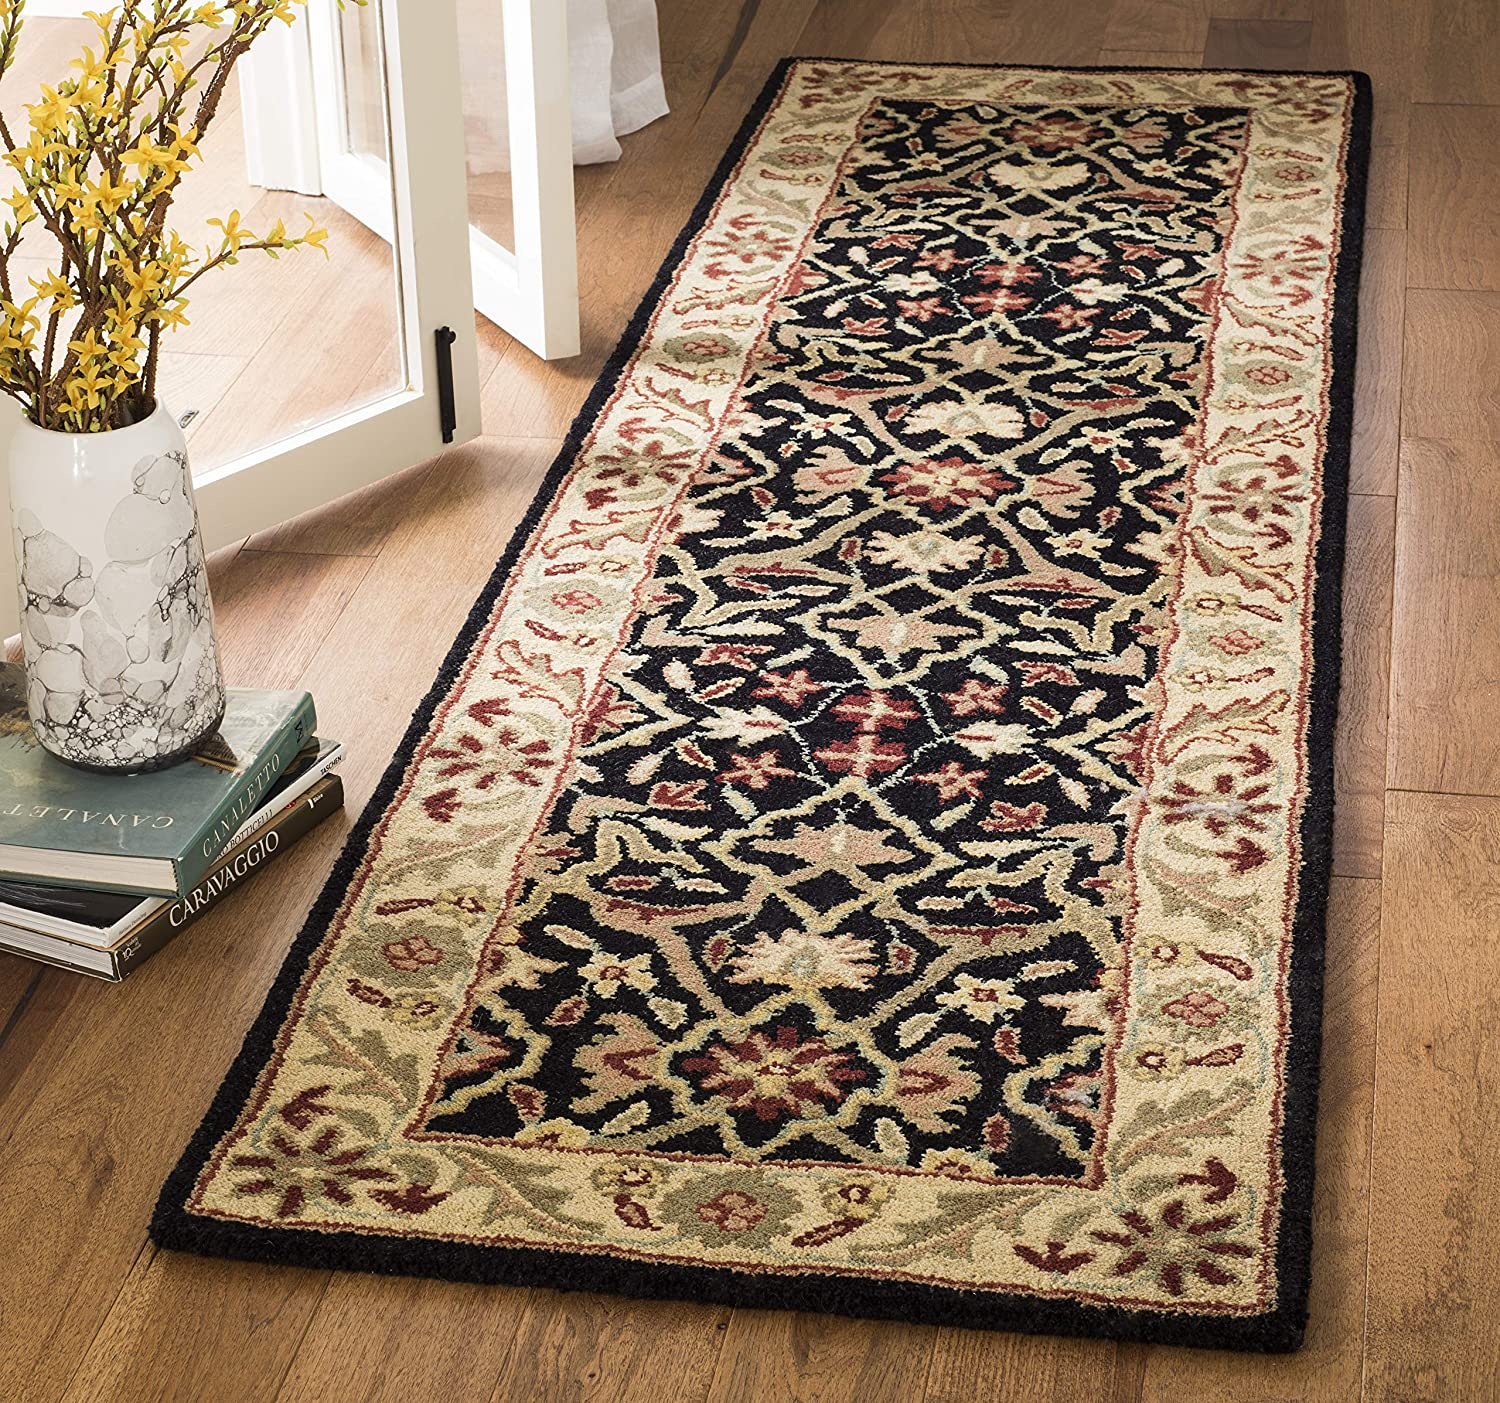 Safavieh Popular product Antiquity Collection AT14B Handmade Max 51% OFF Orienta Traditional